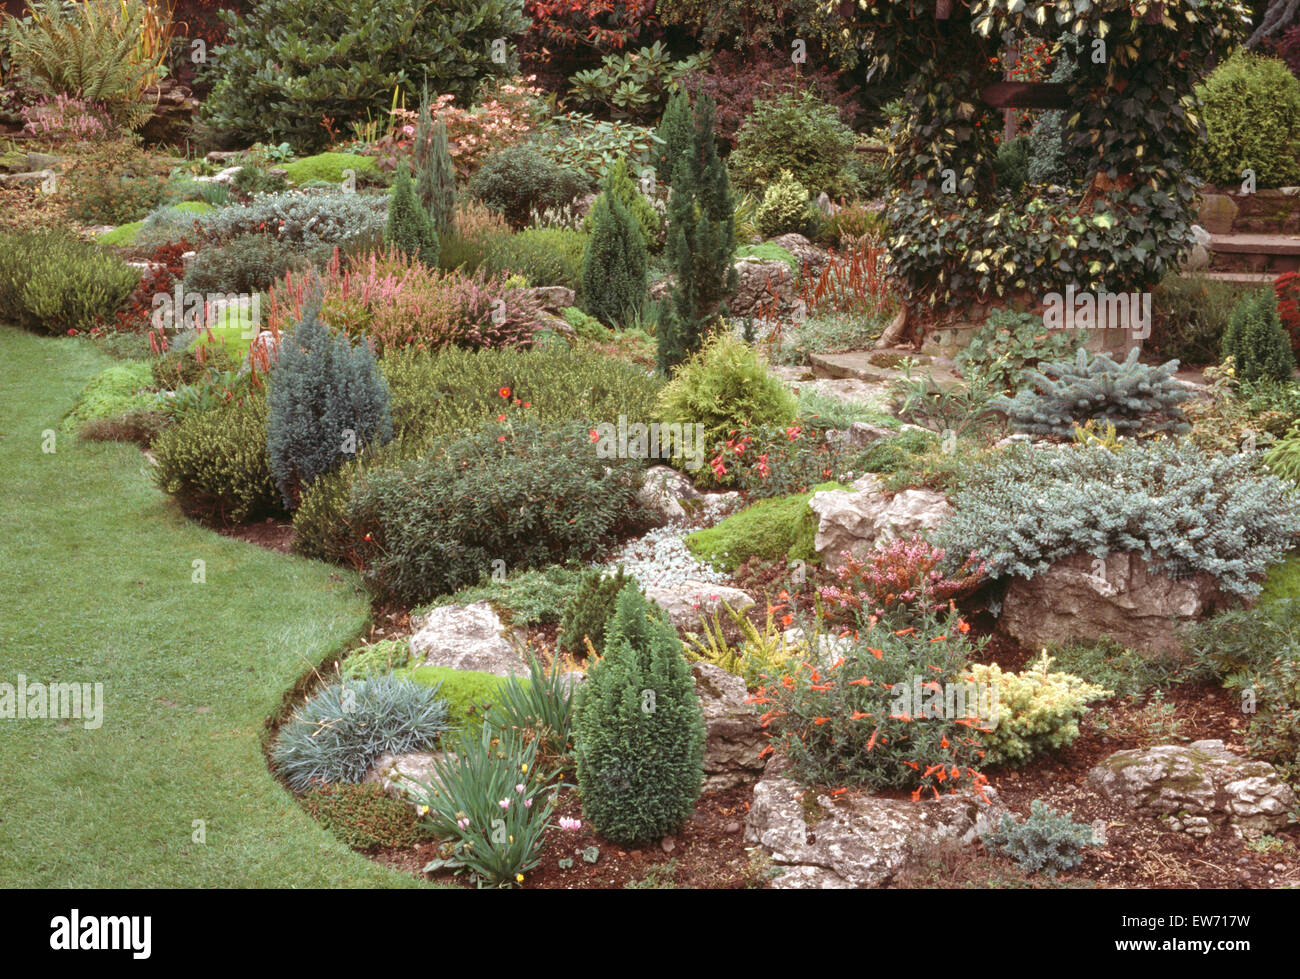 Small conifers and alpine plants in seventies rockery garden with neat edging - Stock Image